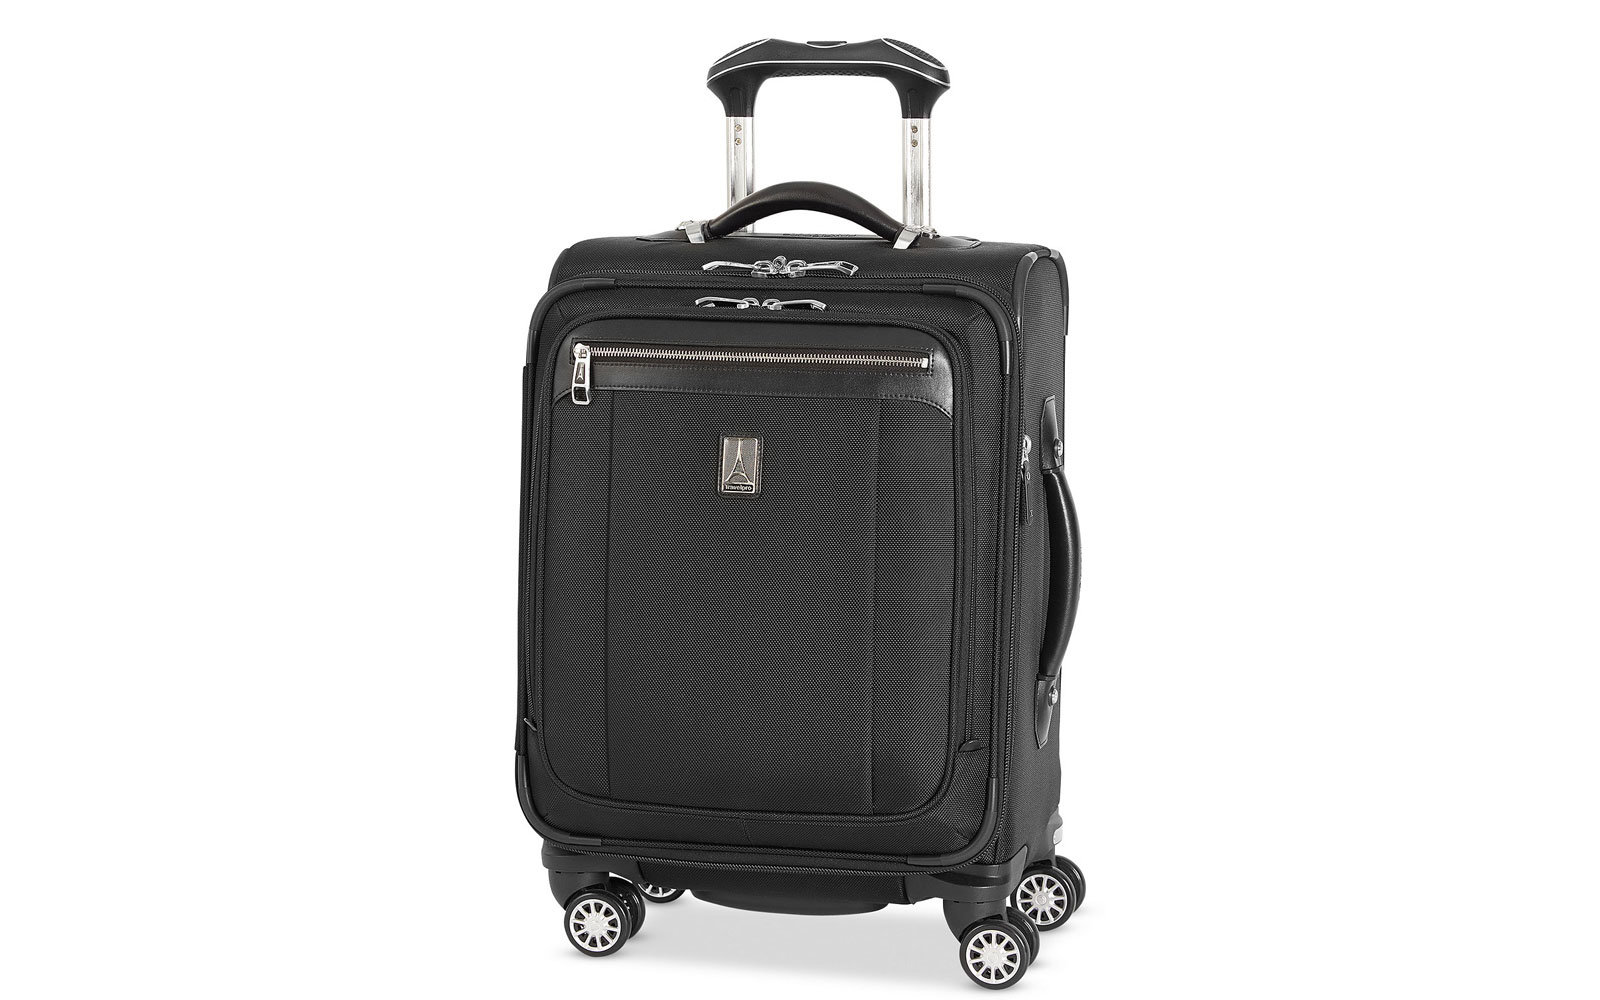 Macys' TravelPro carry on suitcase